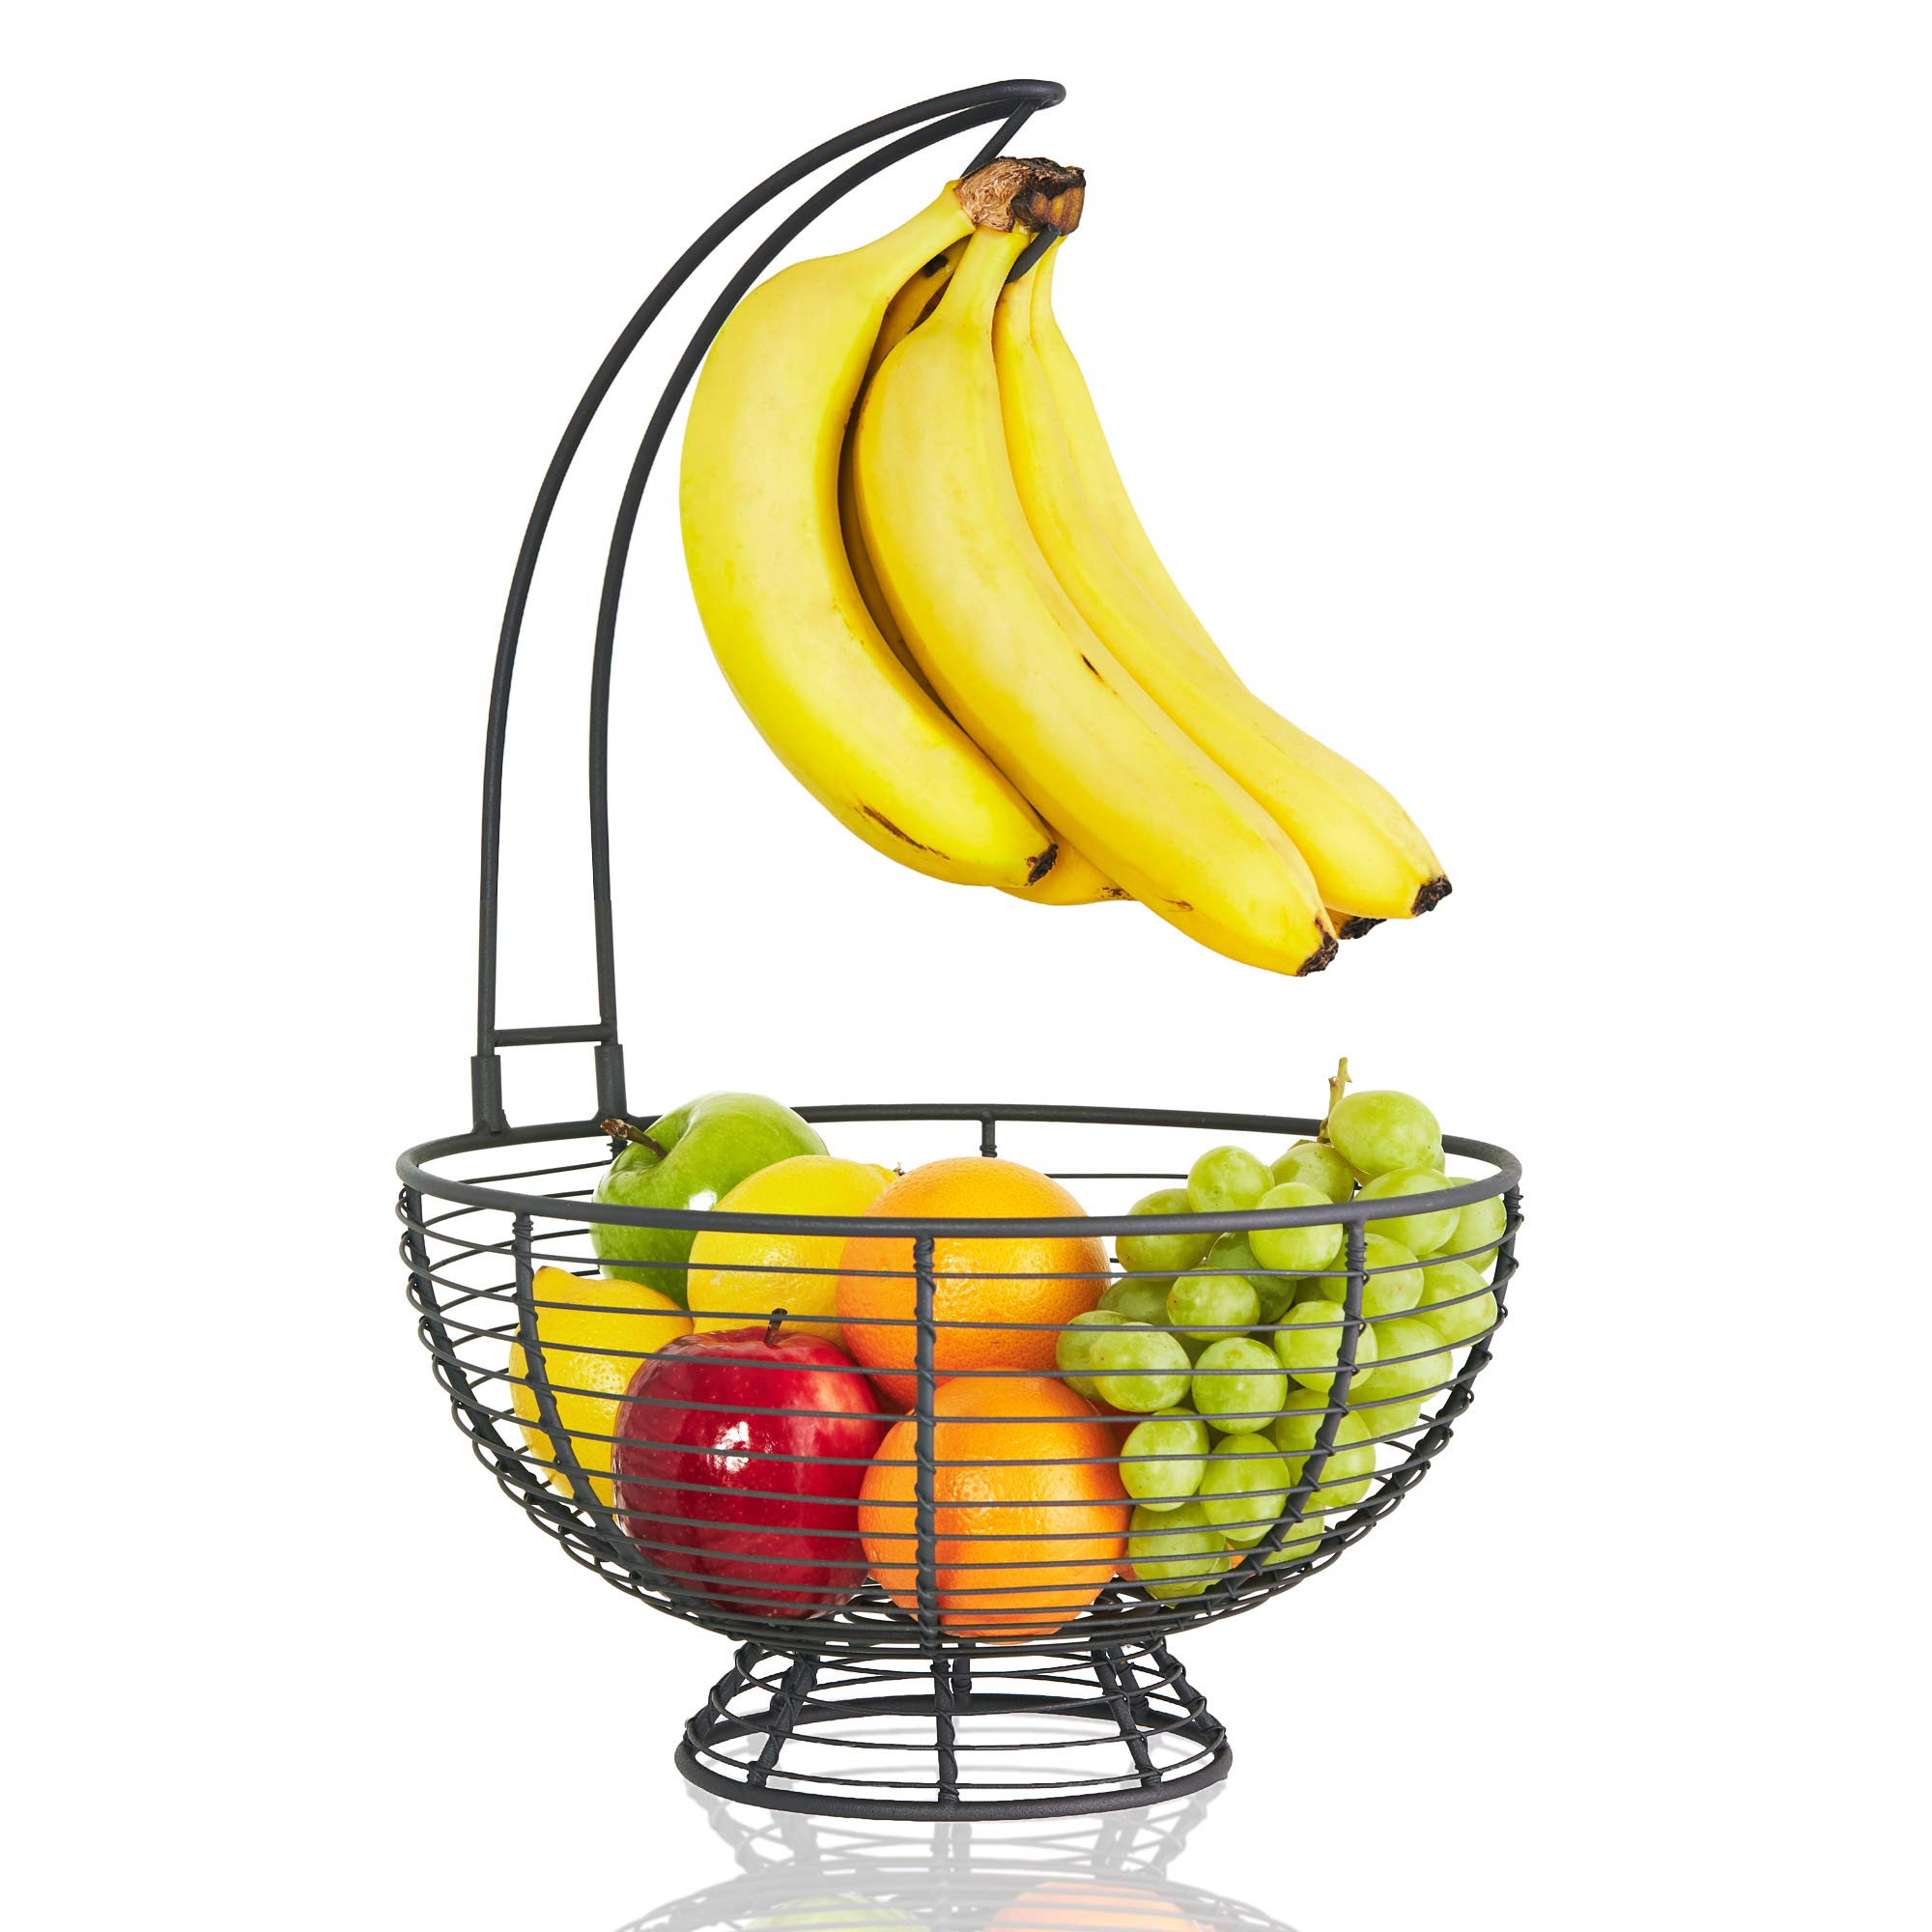 BESPORTBLE Black Large Fruit Basket with Banana Hanger Rustic French Farmhouse Fruit Bowl with Banana Holder Tree Vegetable Fruit Holder with Banana Stand